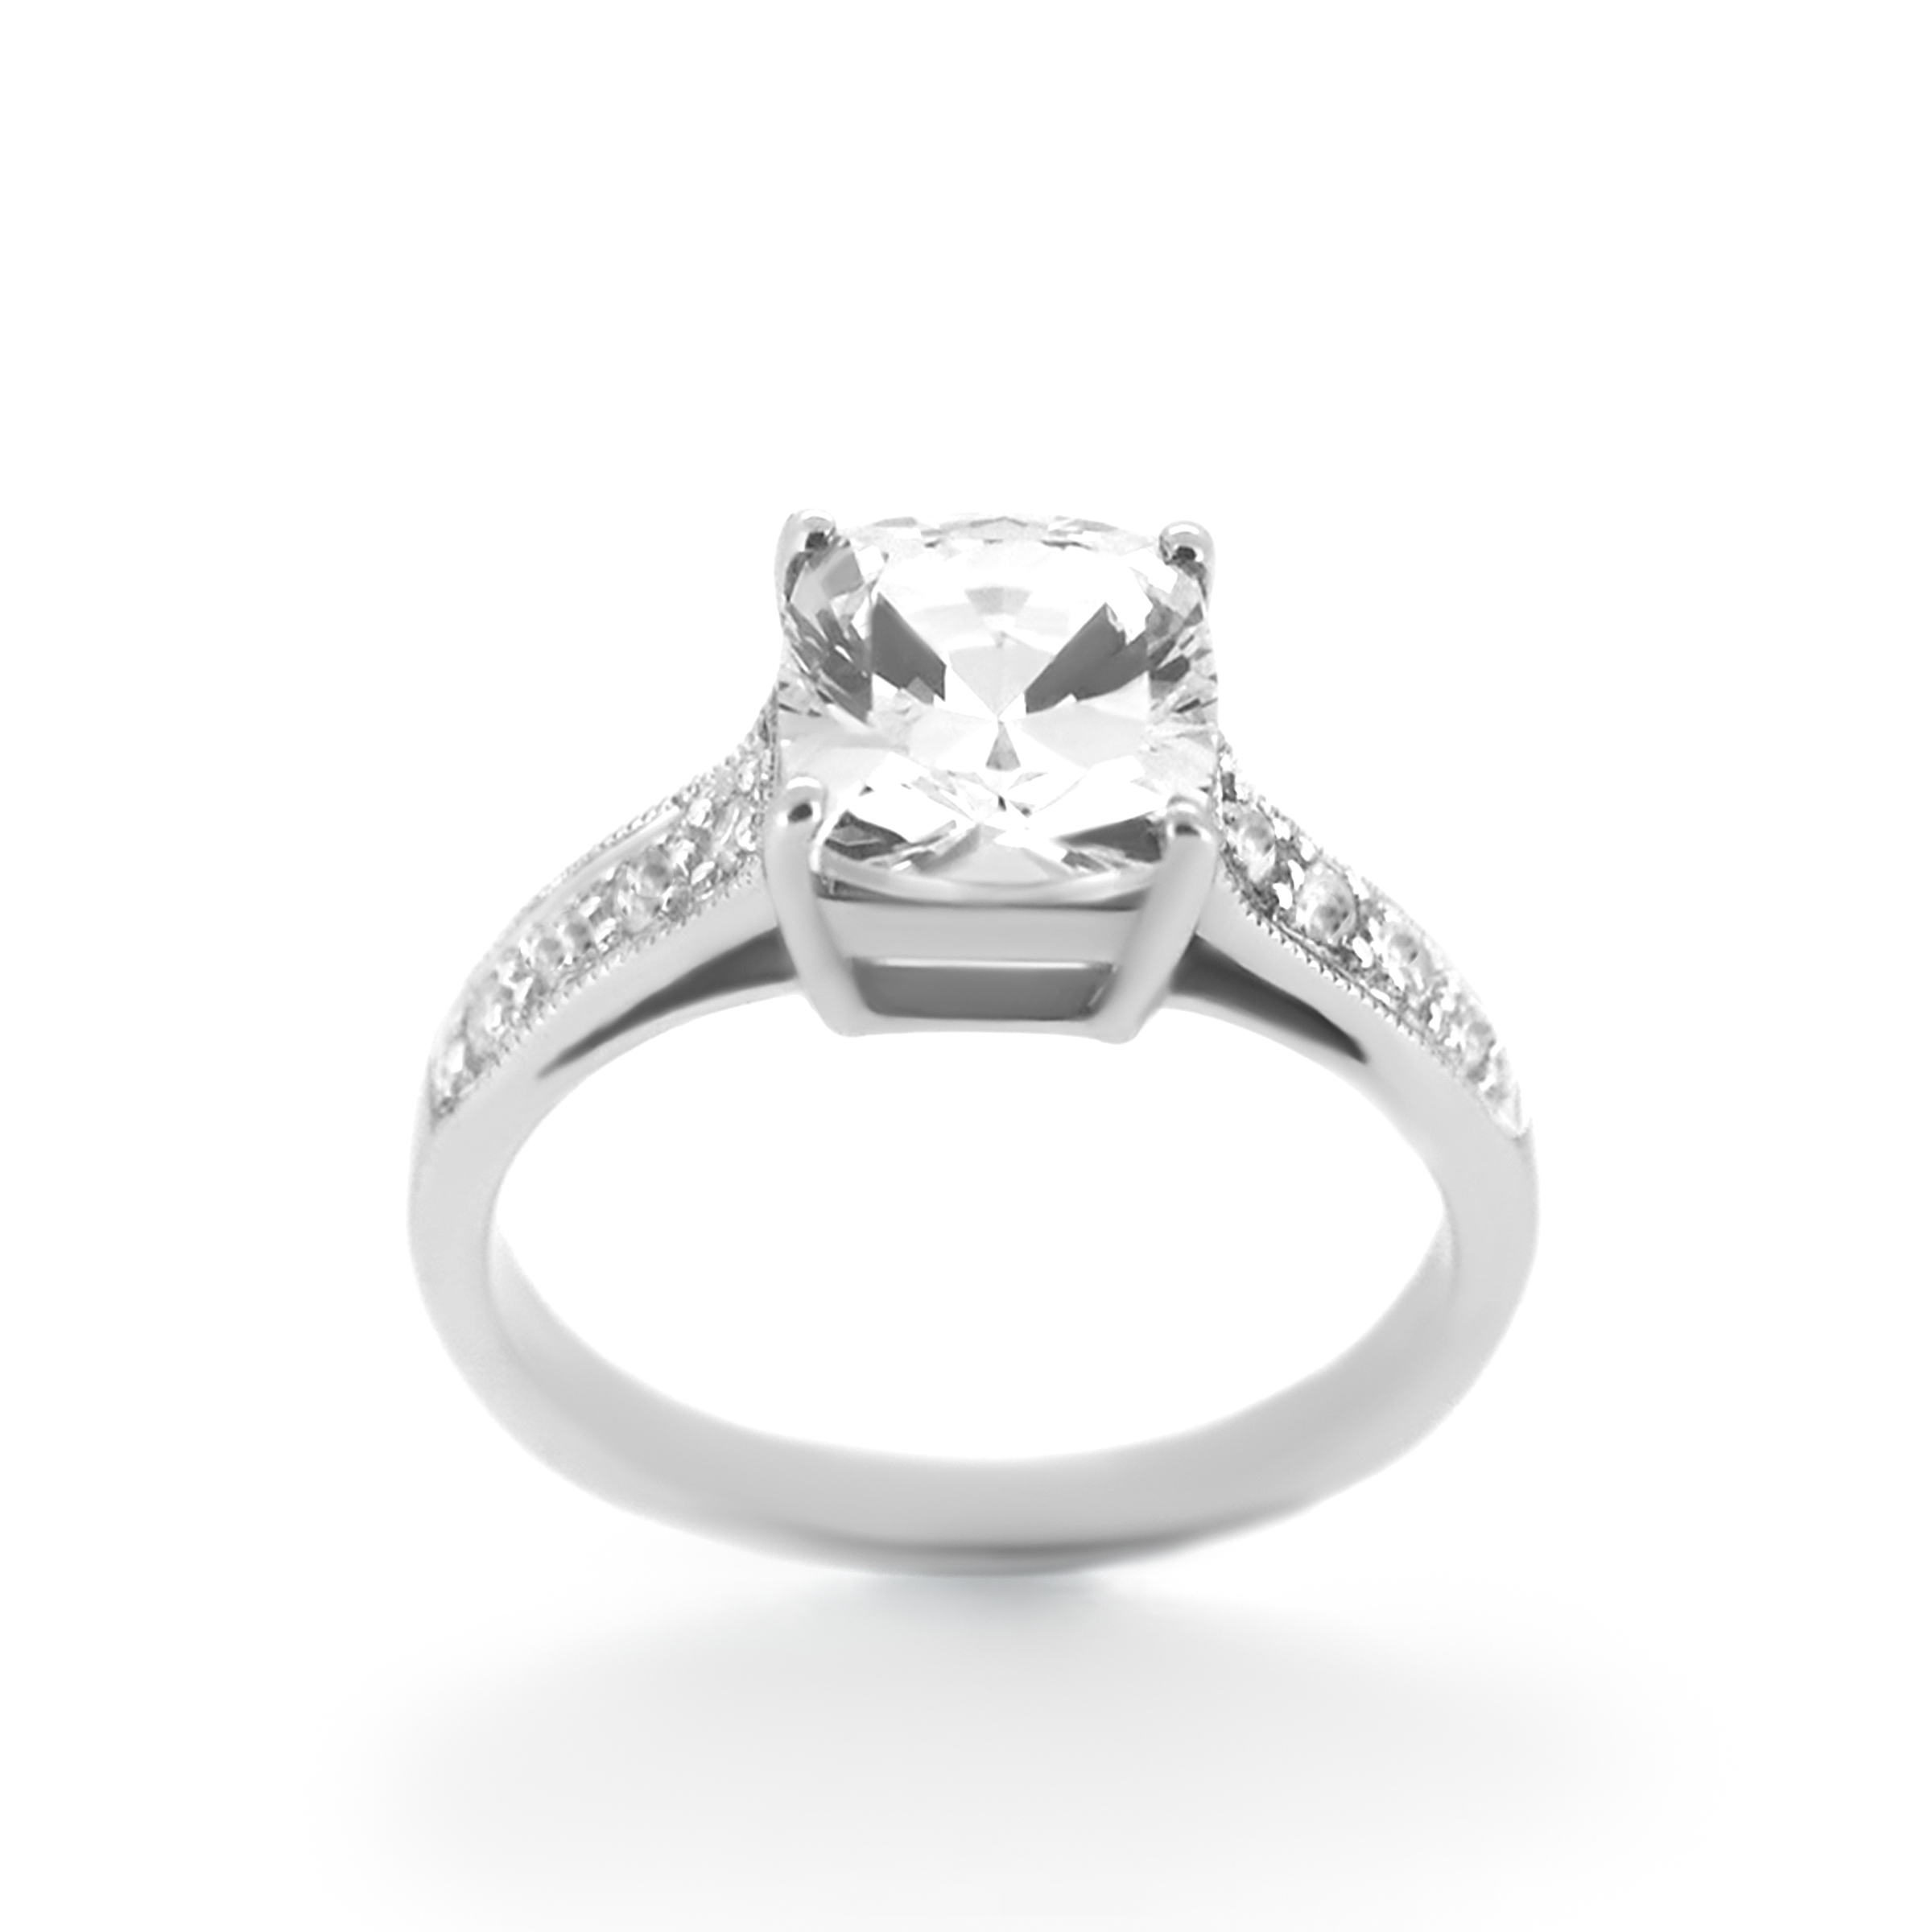 cushion cut diamond with side-stones engagement ring- haywards of hong kong